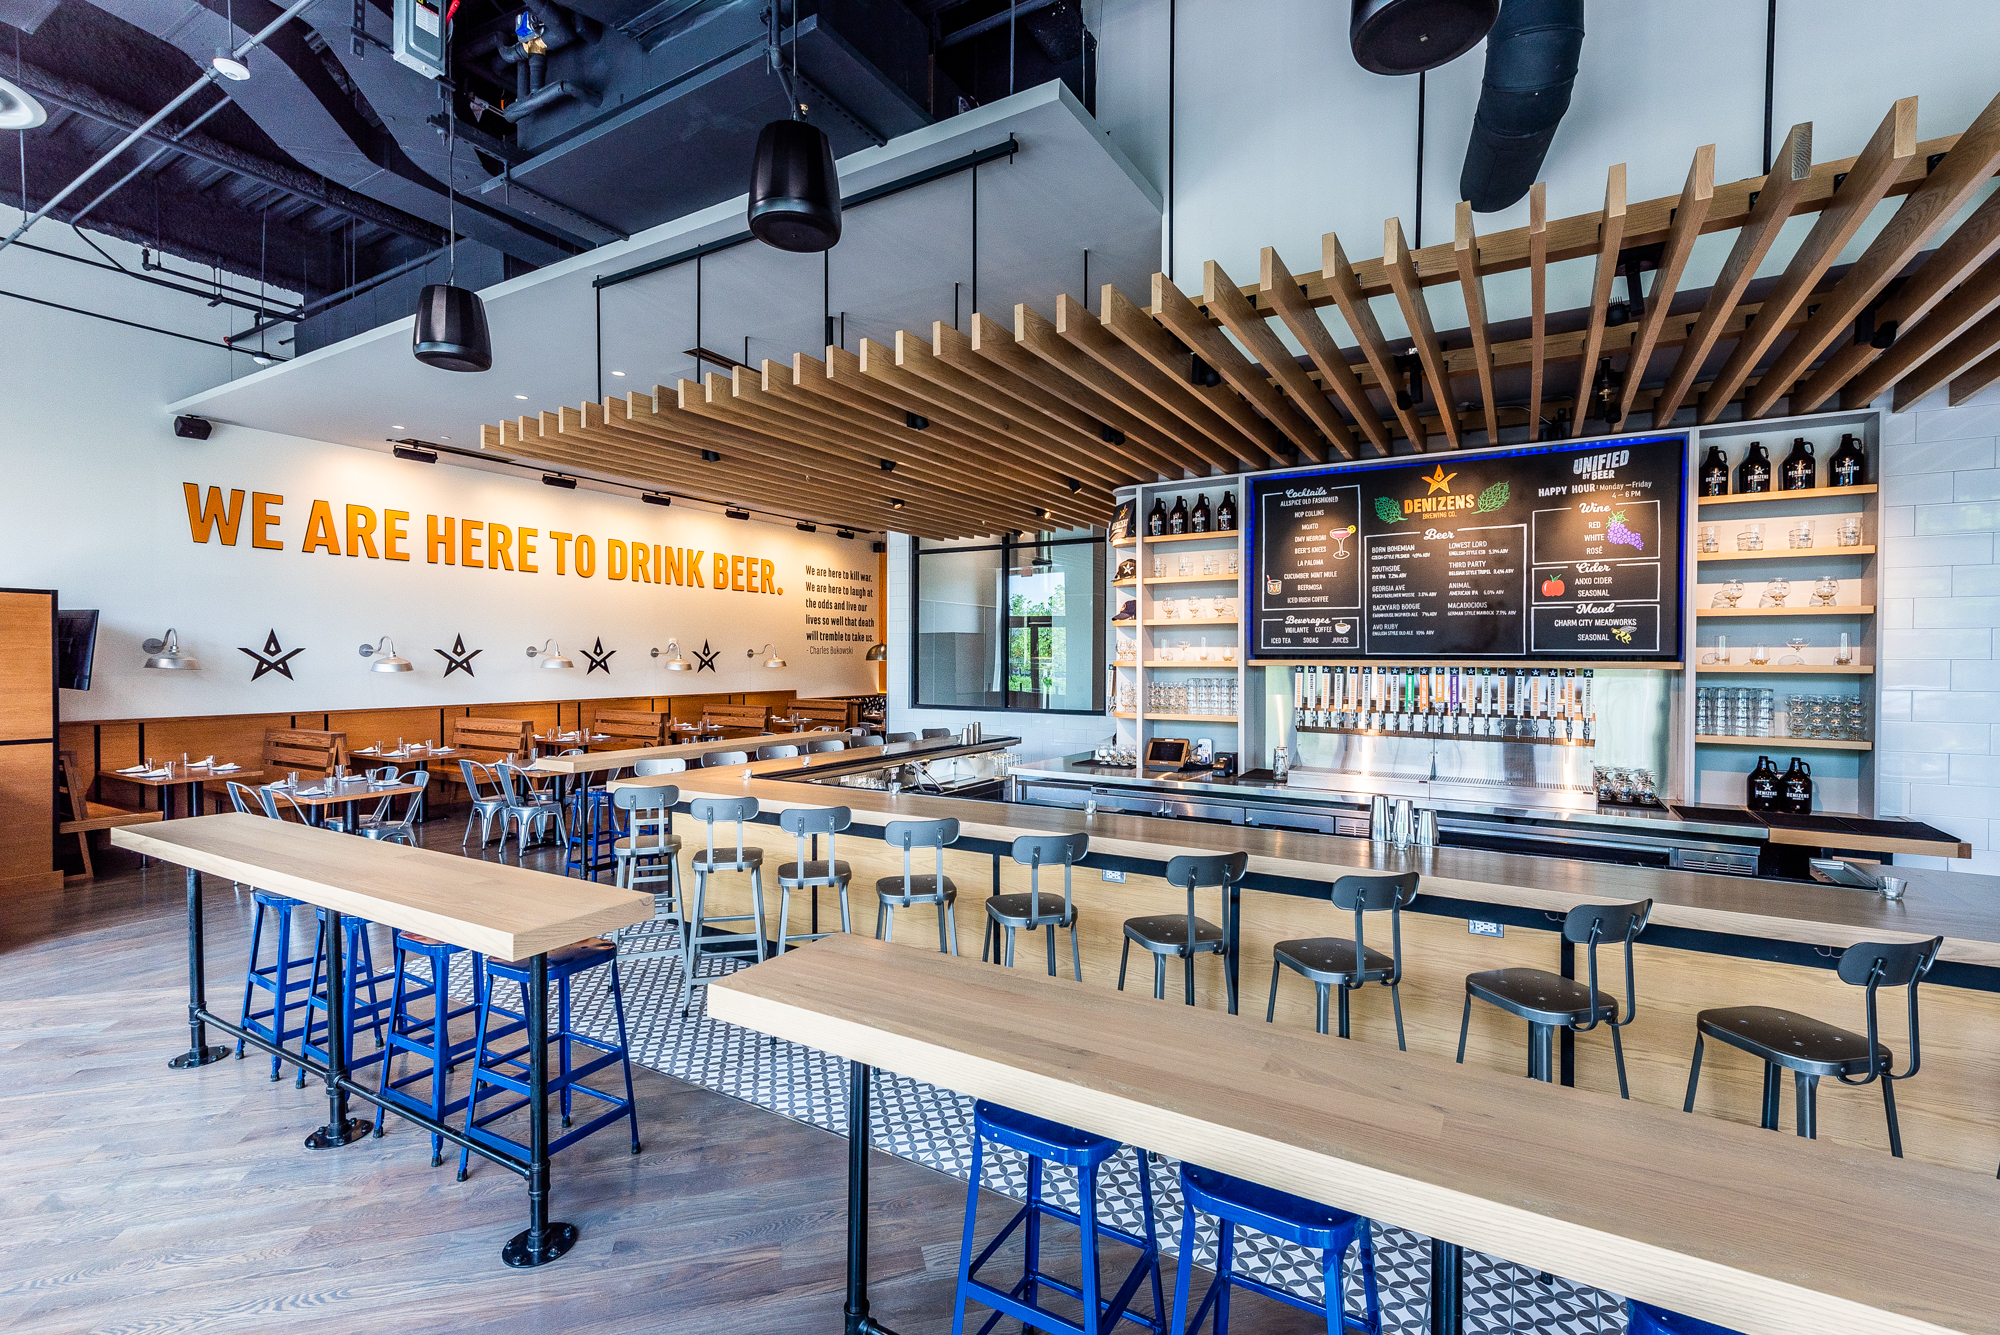 A New 12,000-Square-Foot Brewery Opens in PG County This Weekend